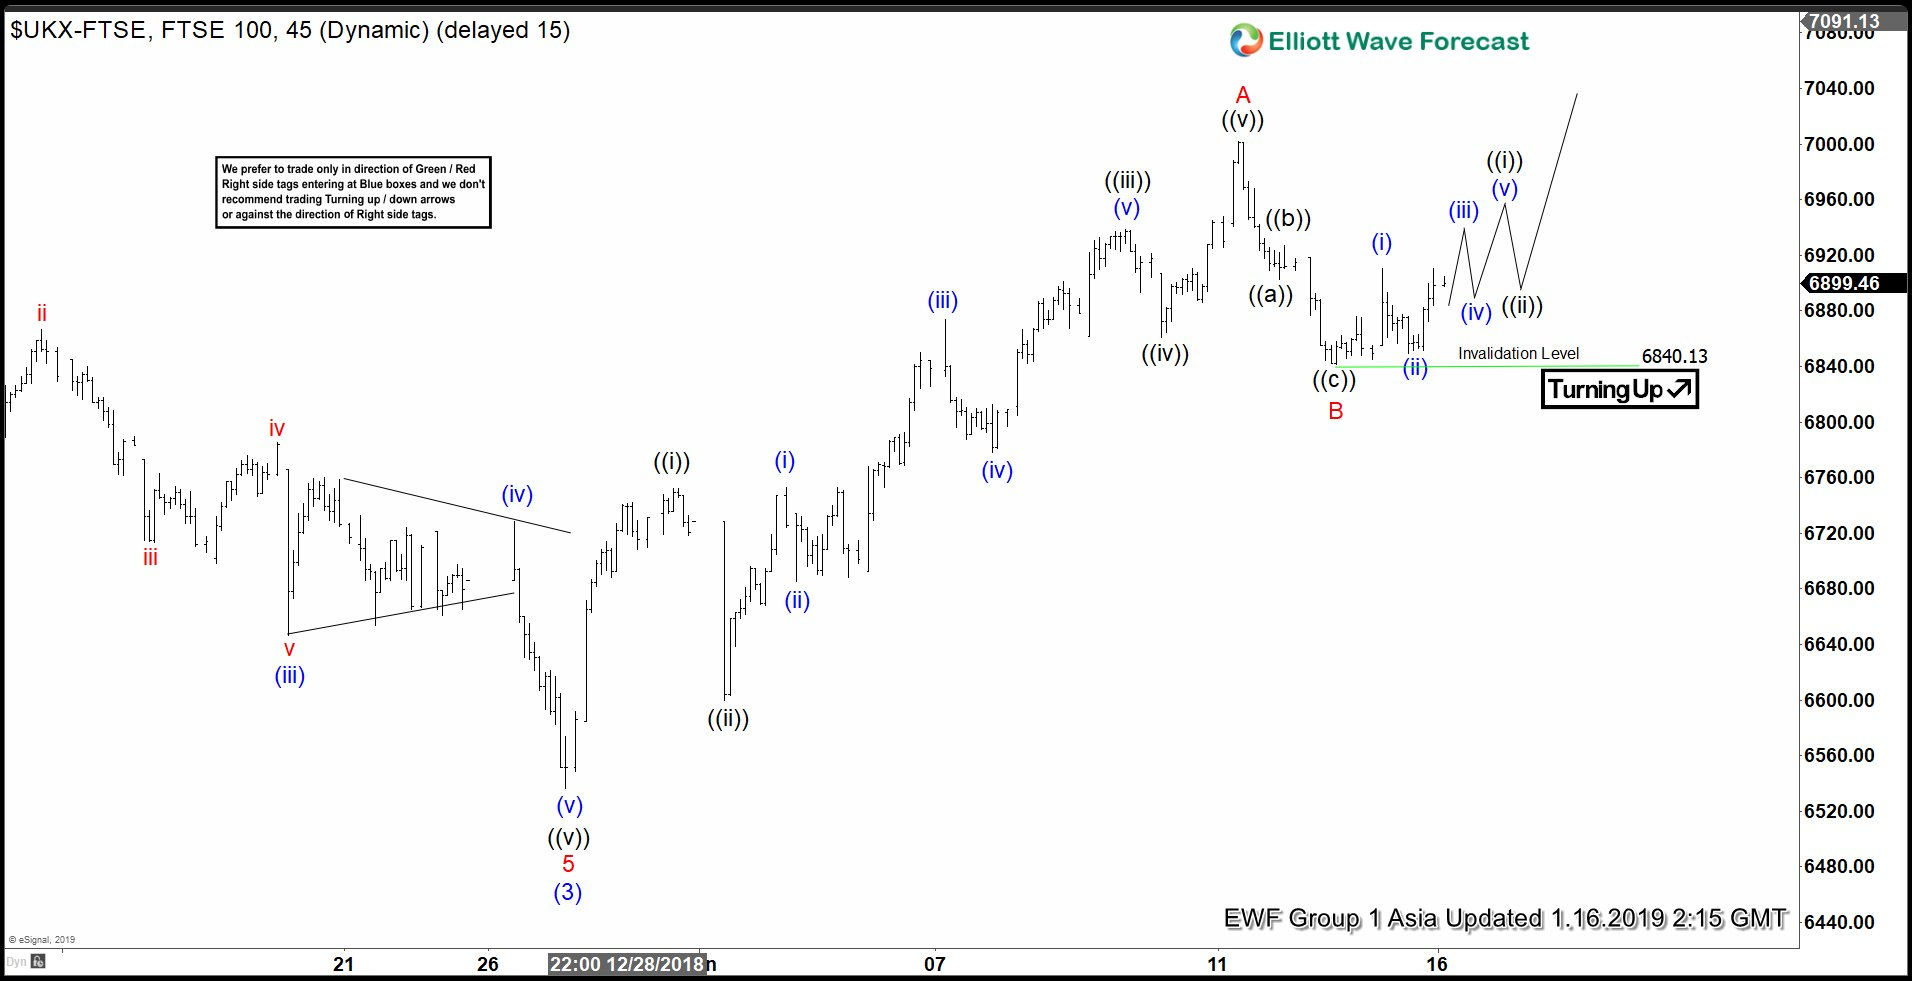 Elliott Wave View: FTSE should extend higher after 5 waves move